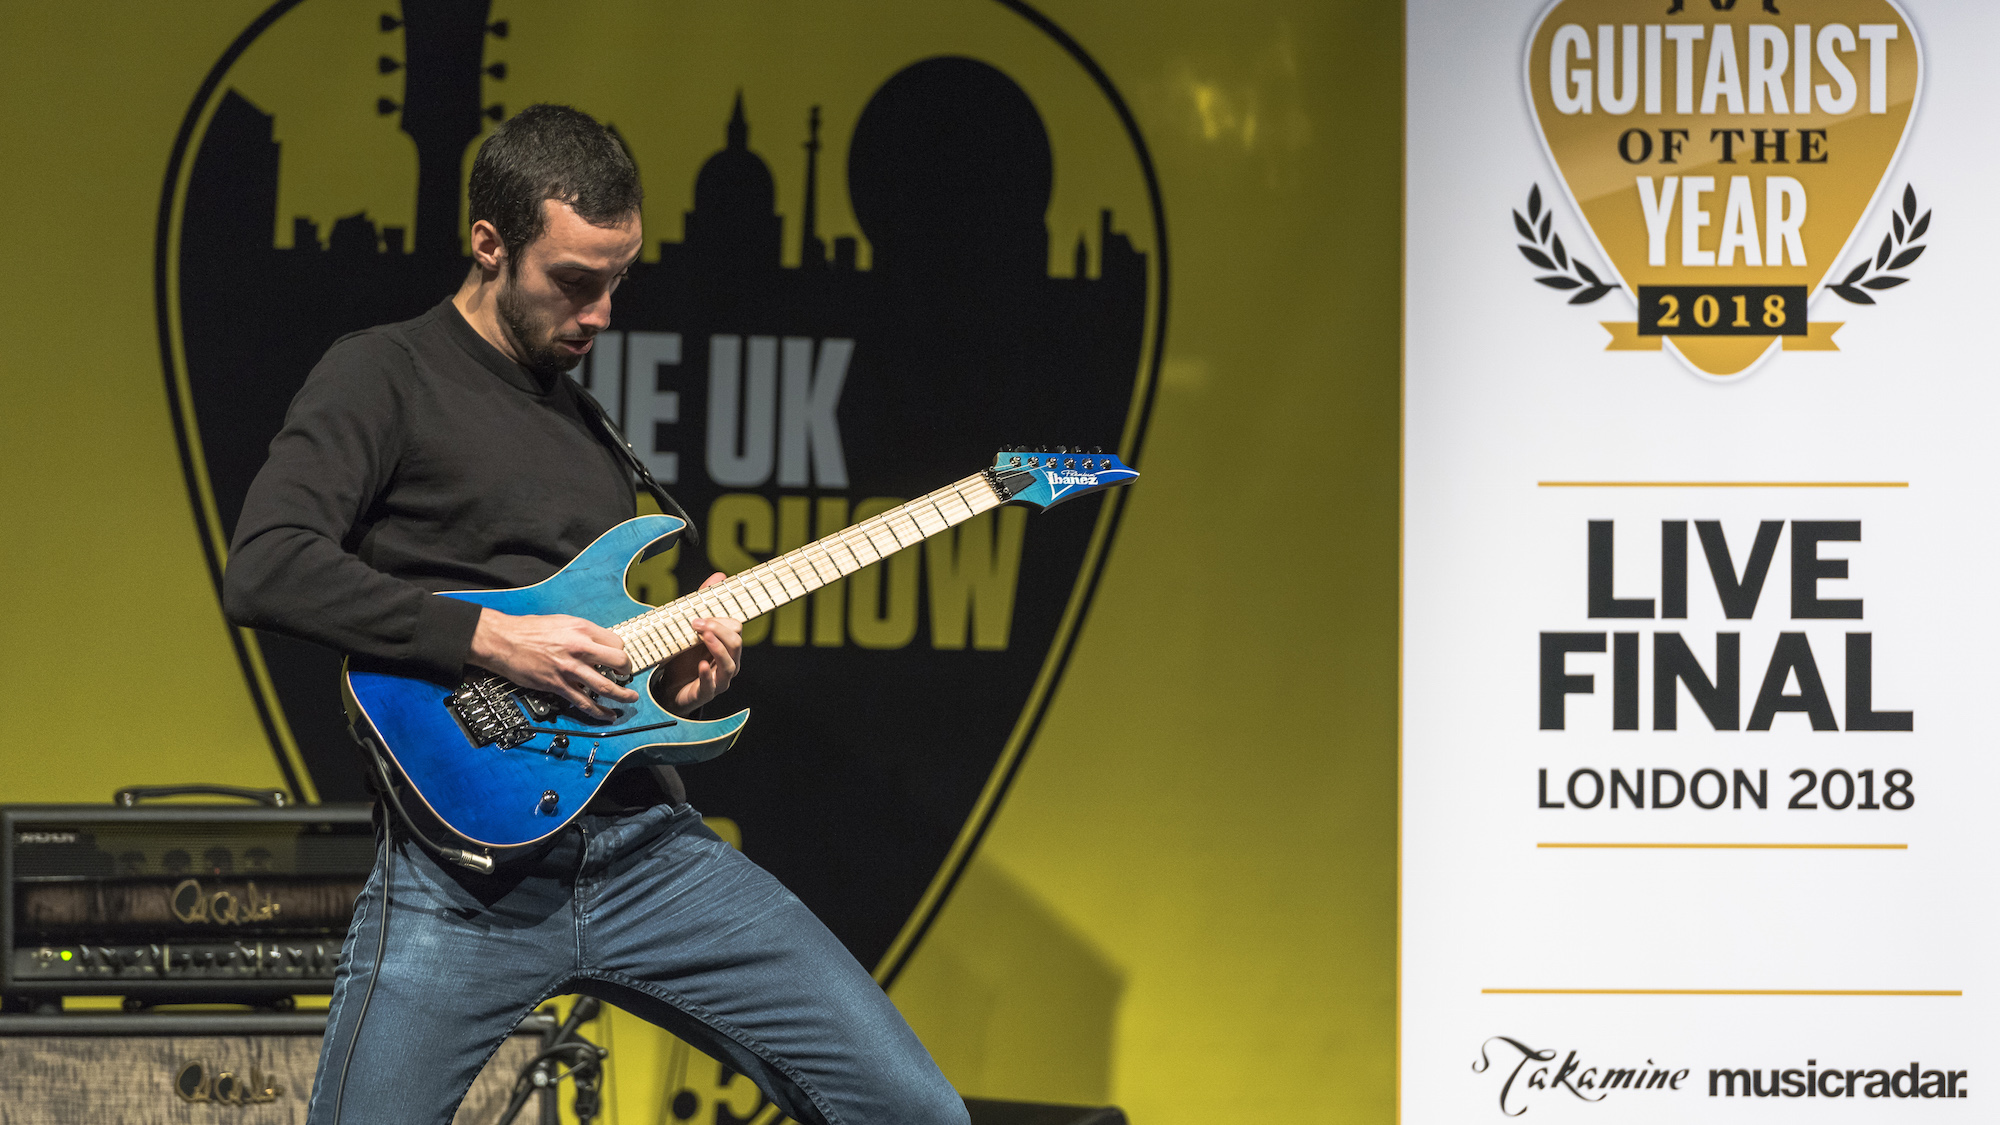 Watch 2018's phenomenal Guitarist of the Year finalists in action